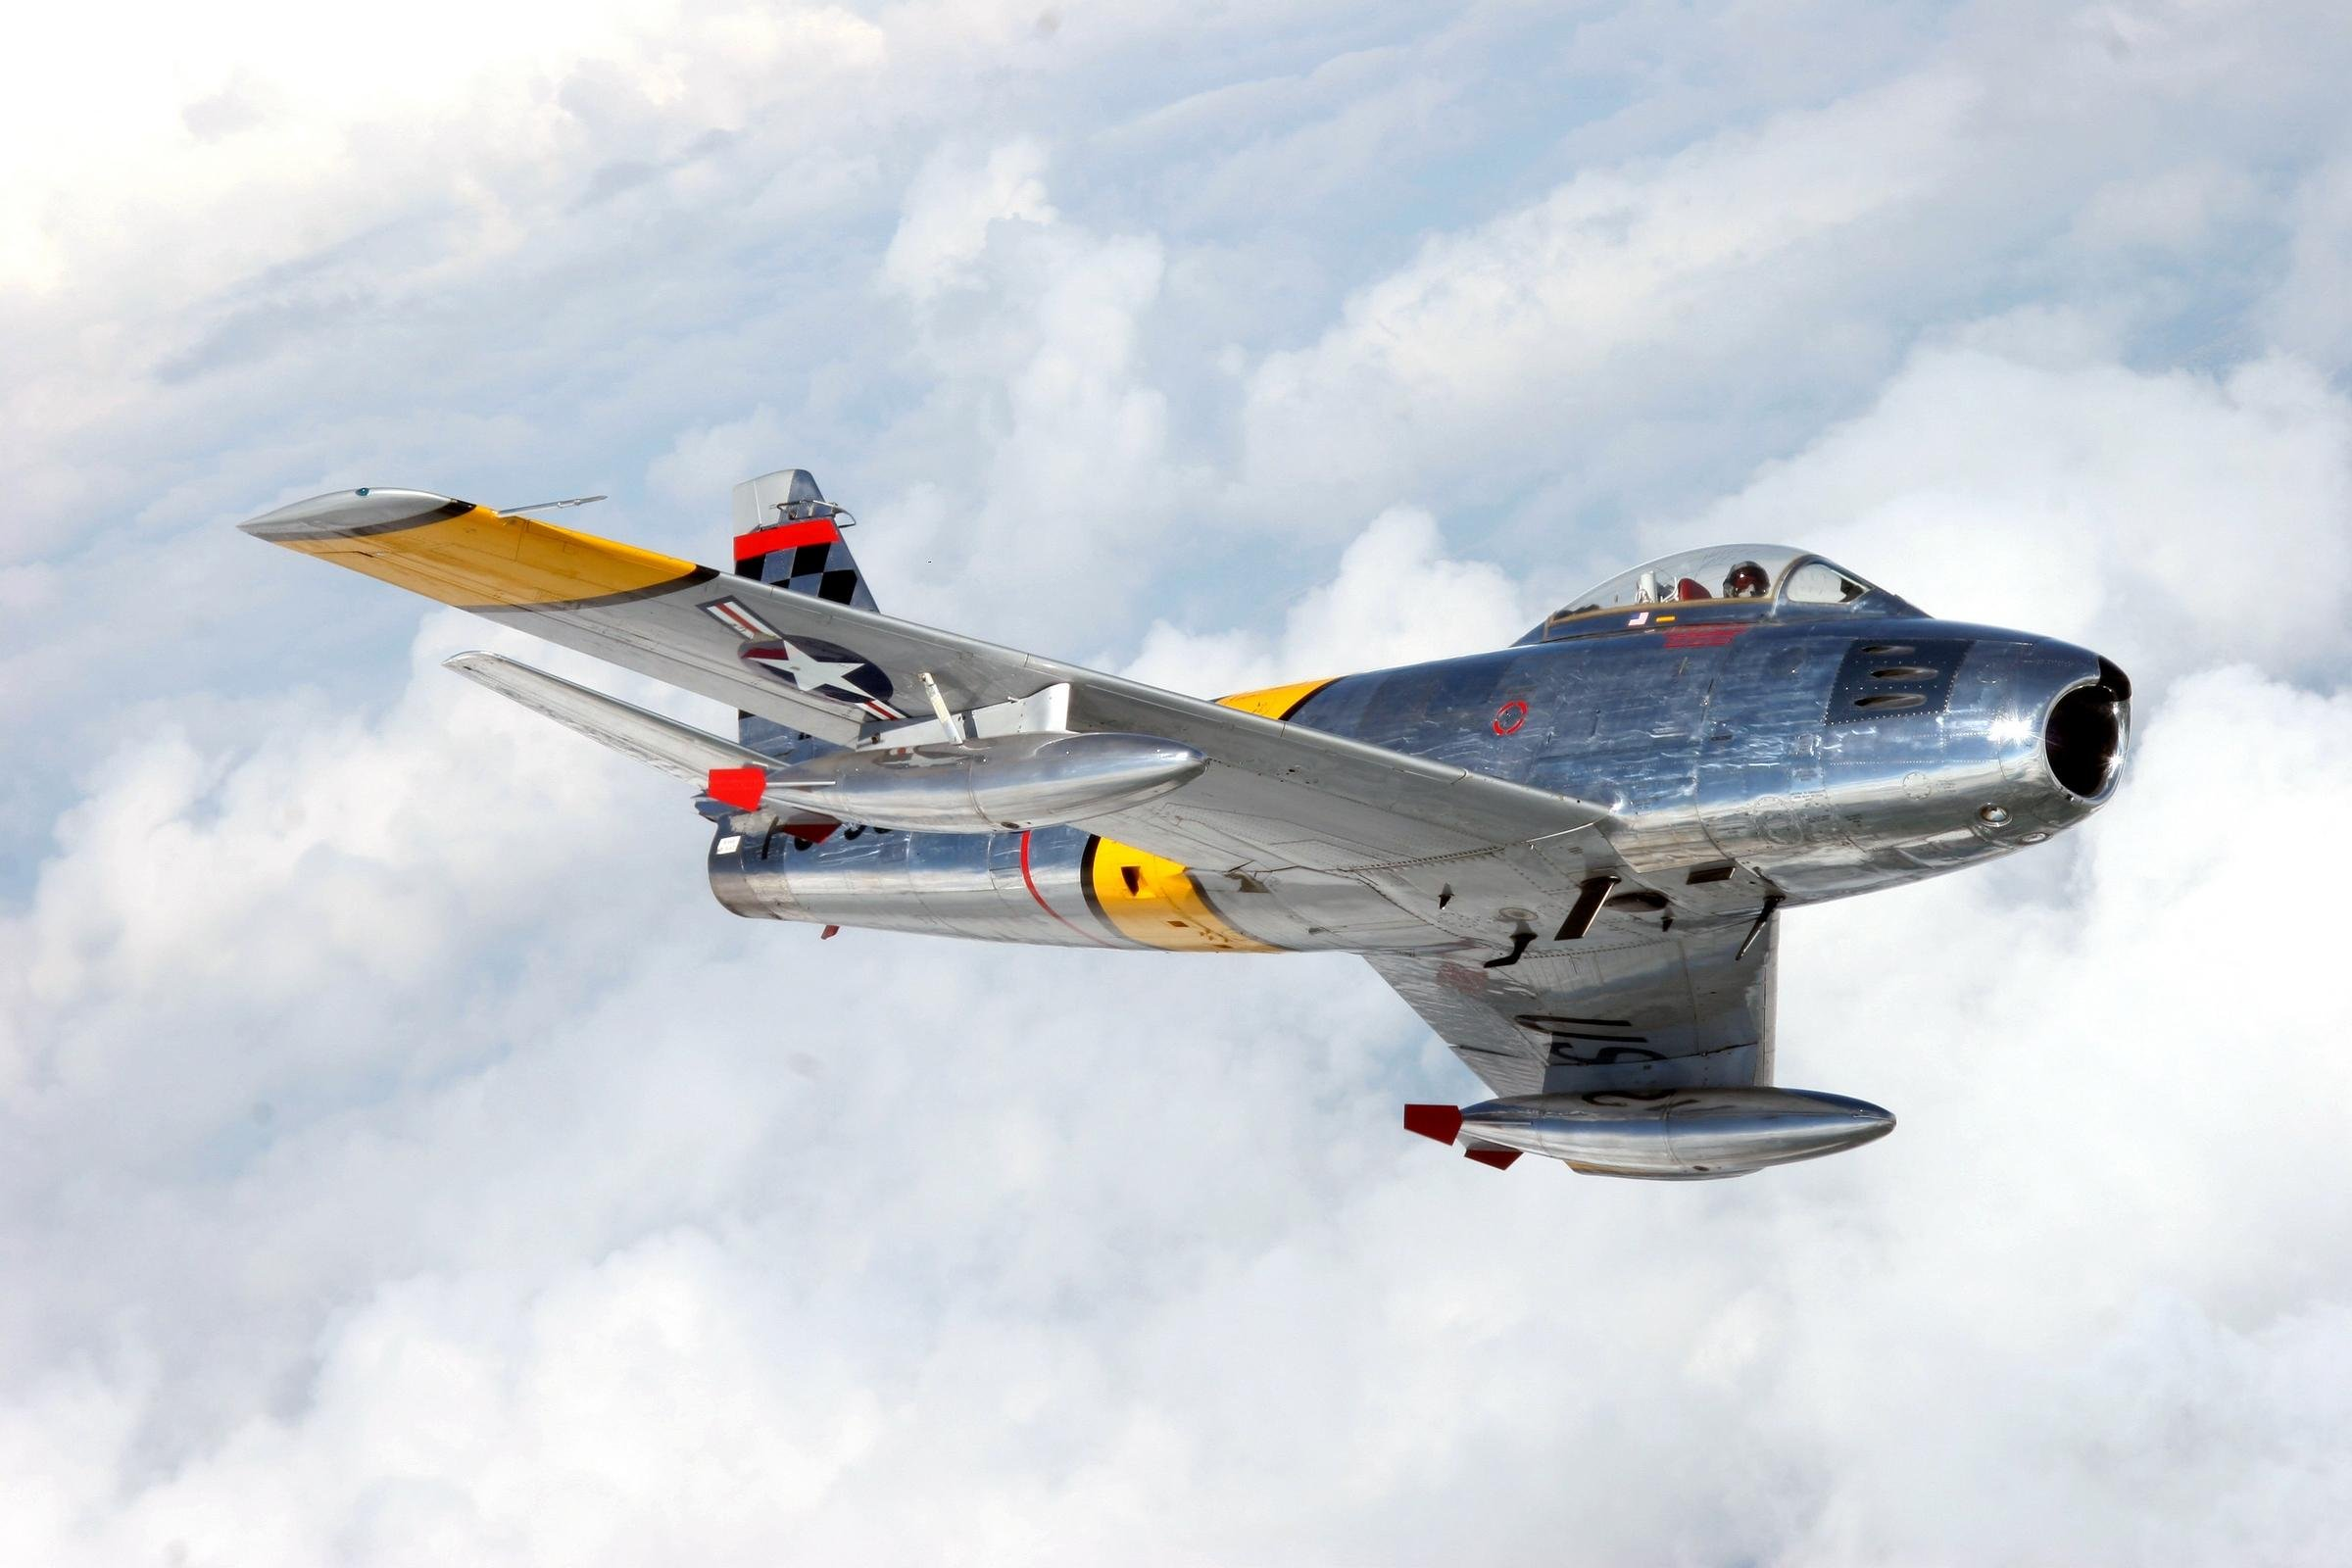 F 86 Sabre Fighter Aircraft Wallpaper For Desktop and Mobile